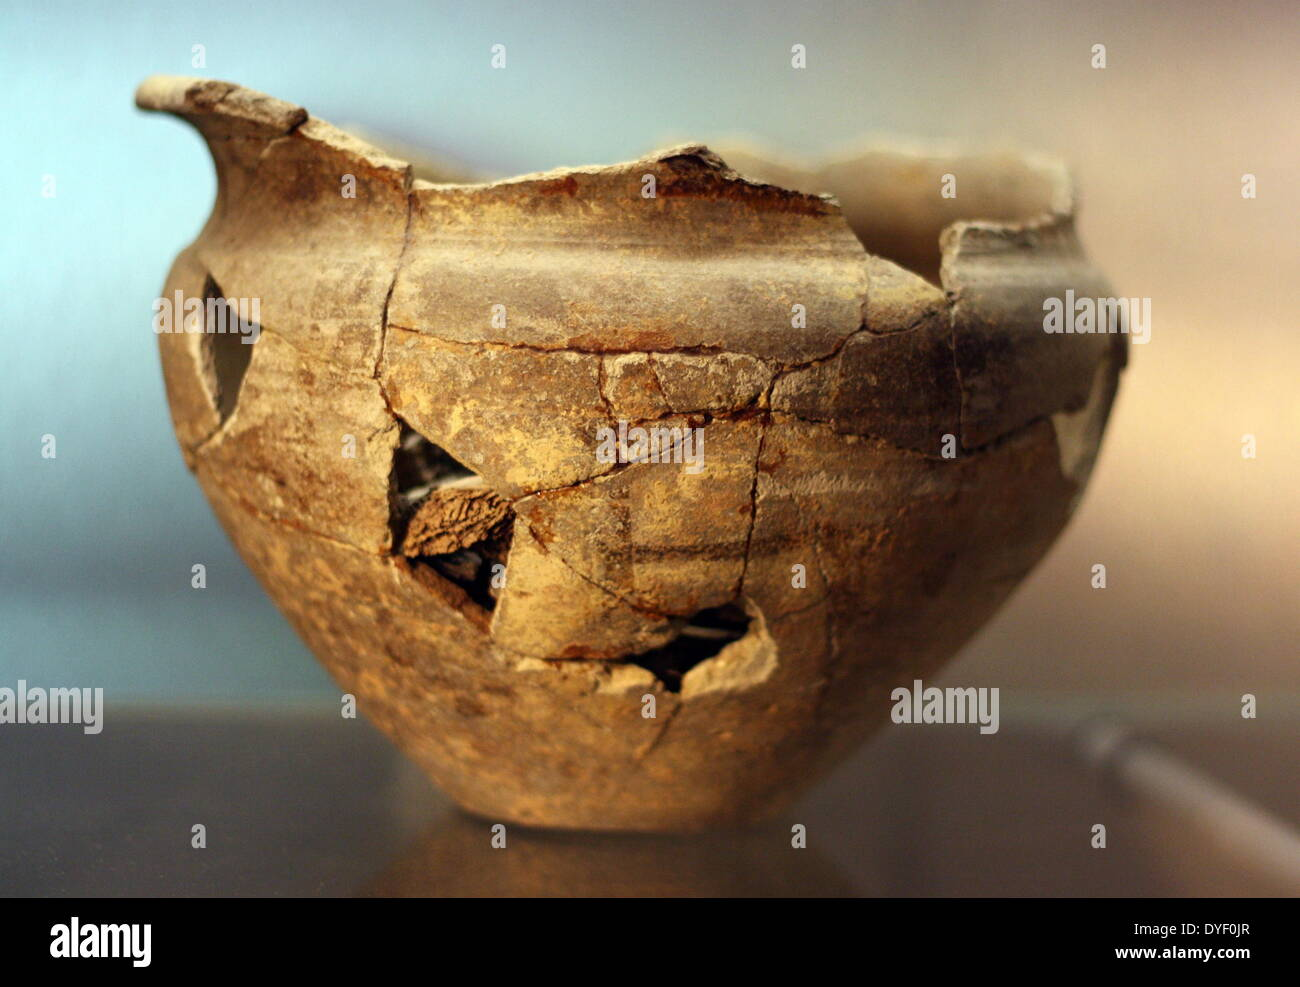 Ancient Roman pottery artefact reconstructed from multiple pieces. - Stock Image